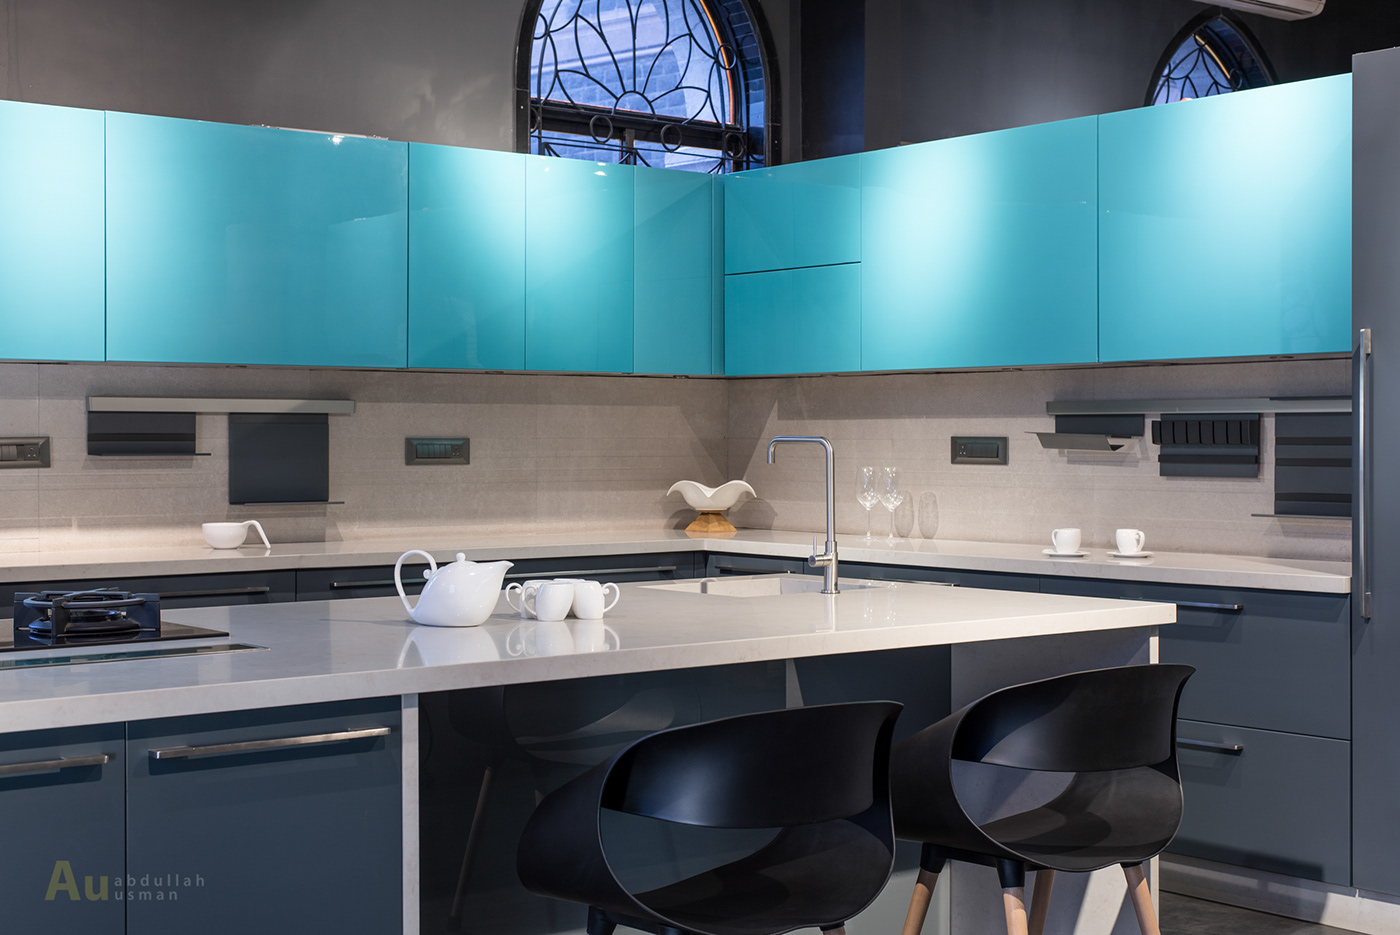 Küché7 Stainless Steel Kitchens on Behance